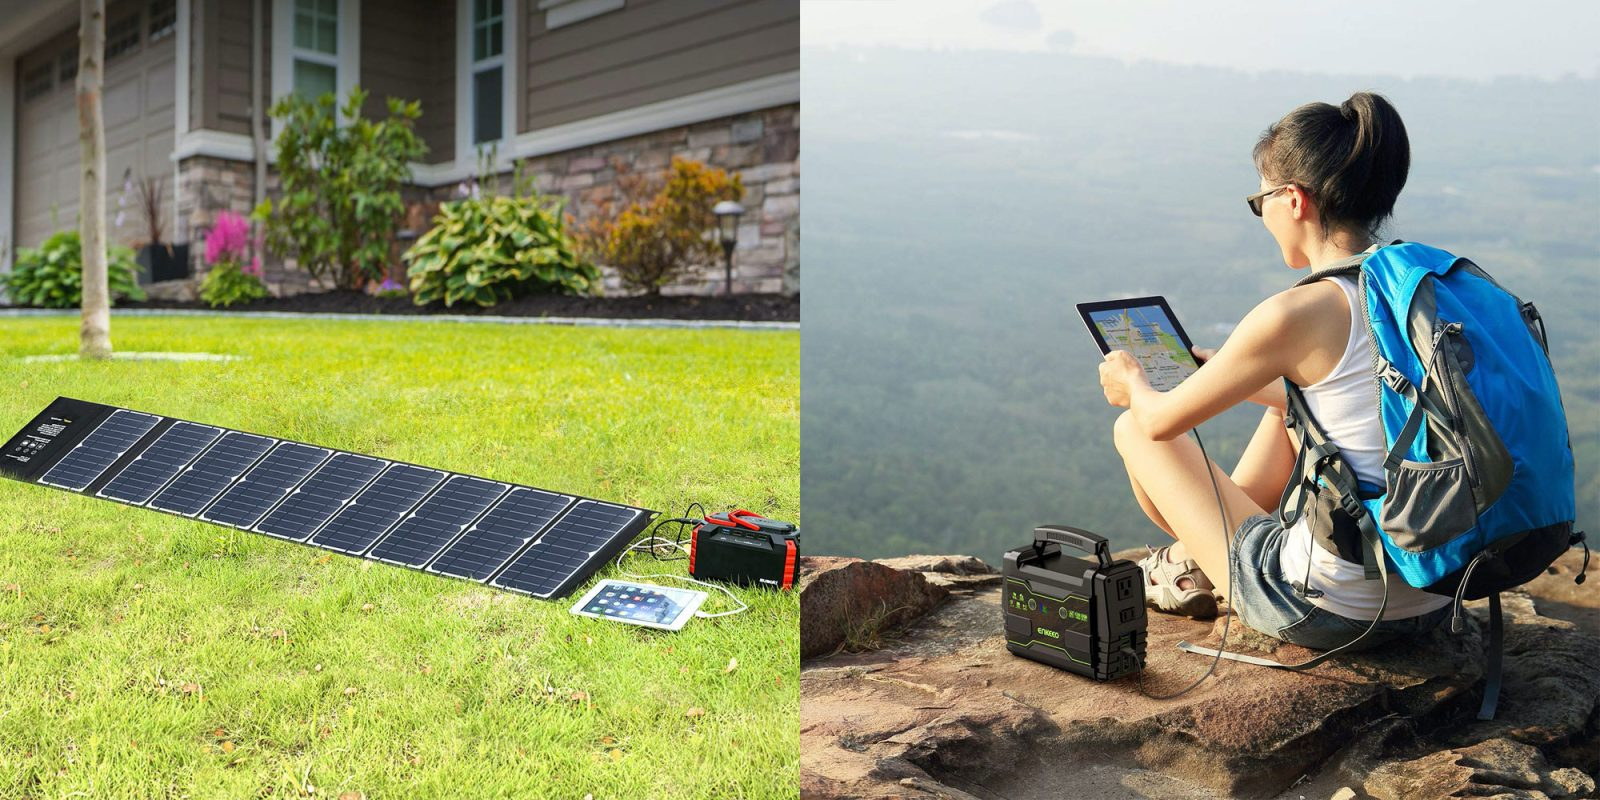 Go off the grid with these portable power stations + solar panels from $83